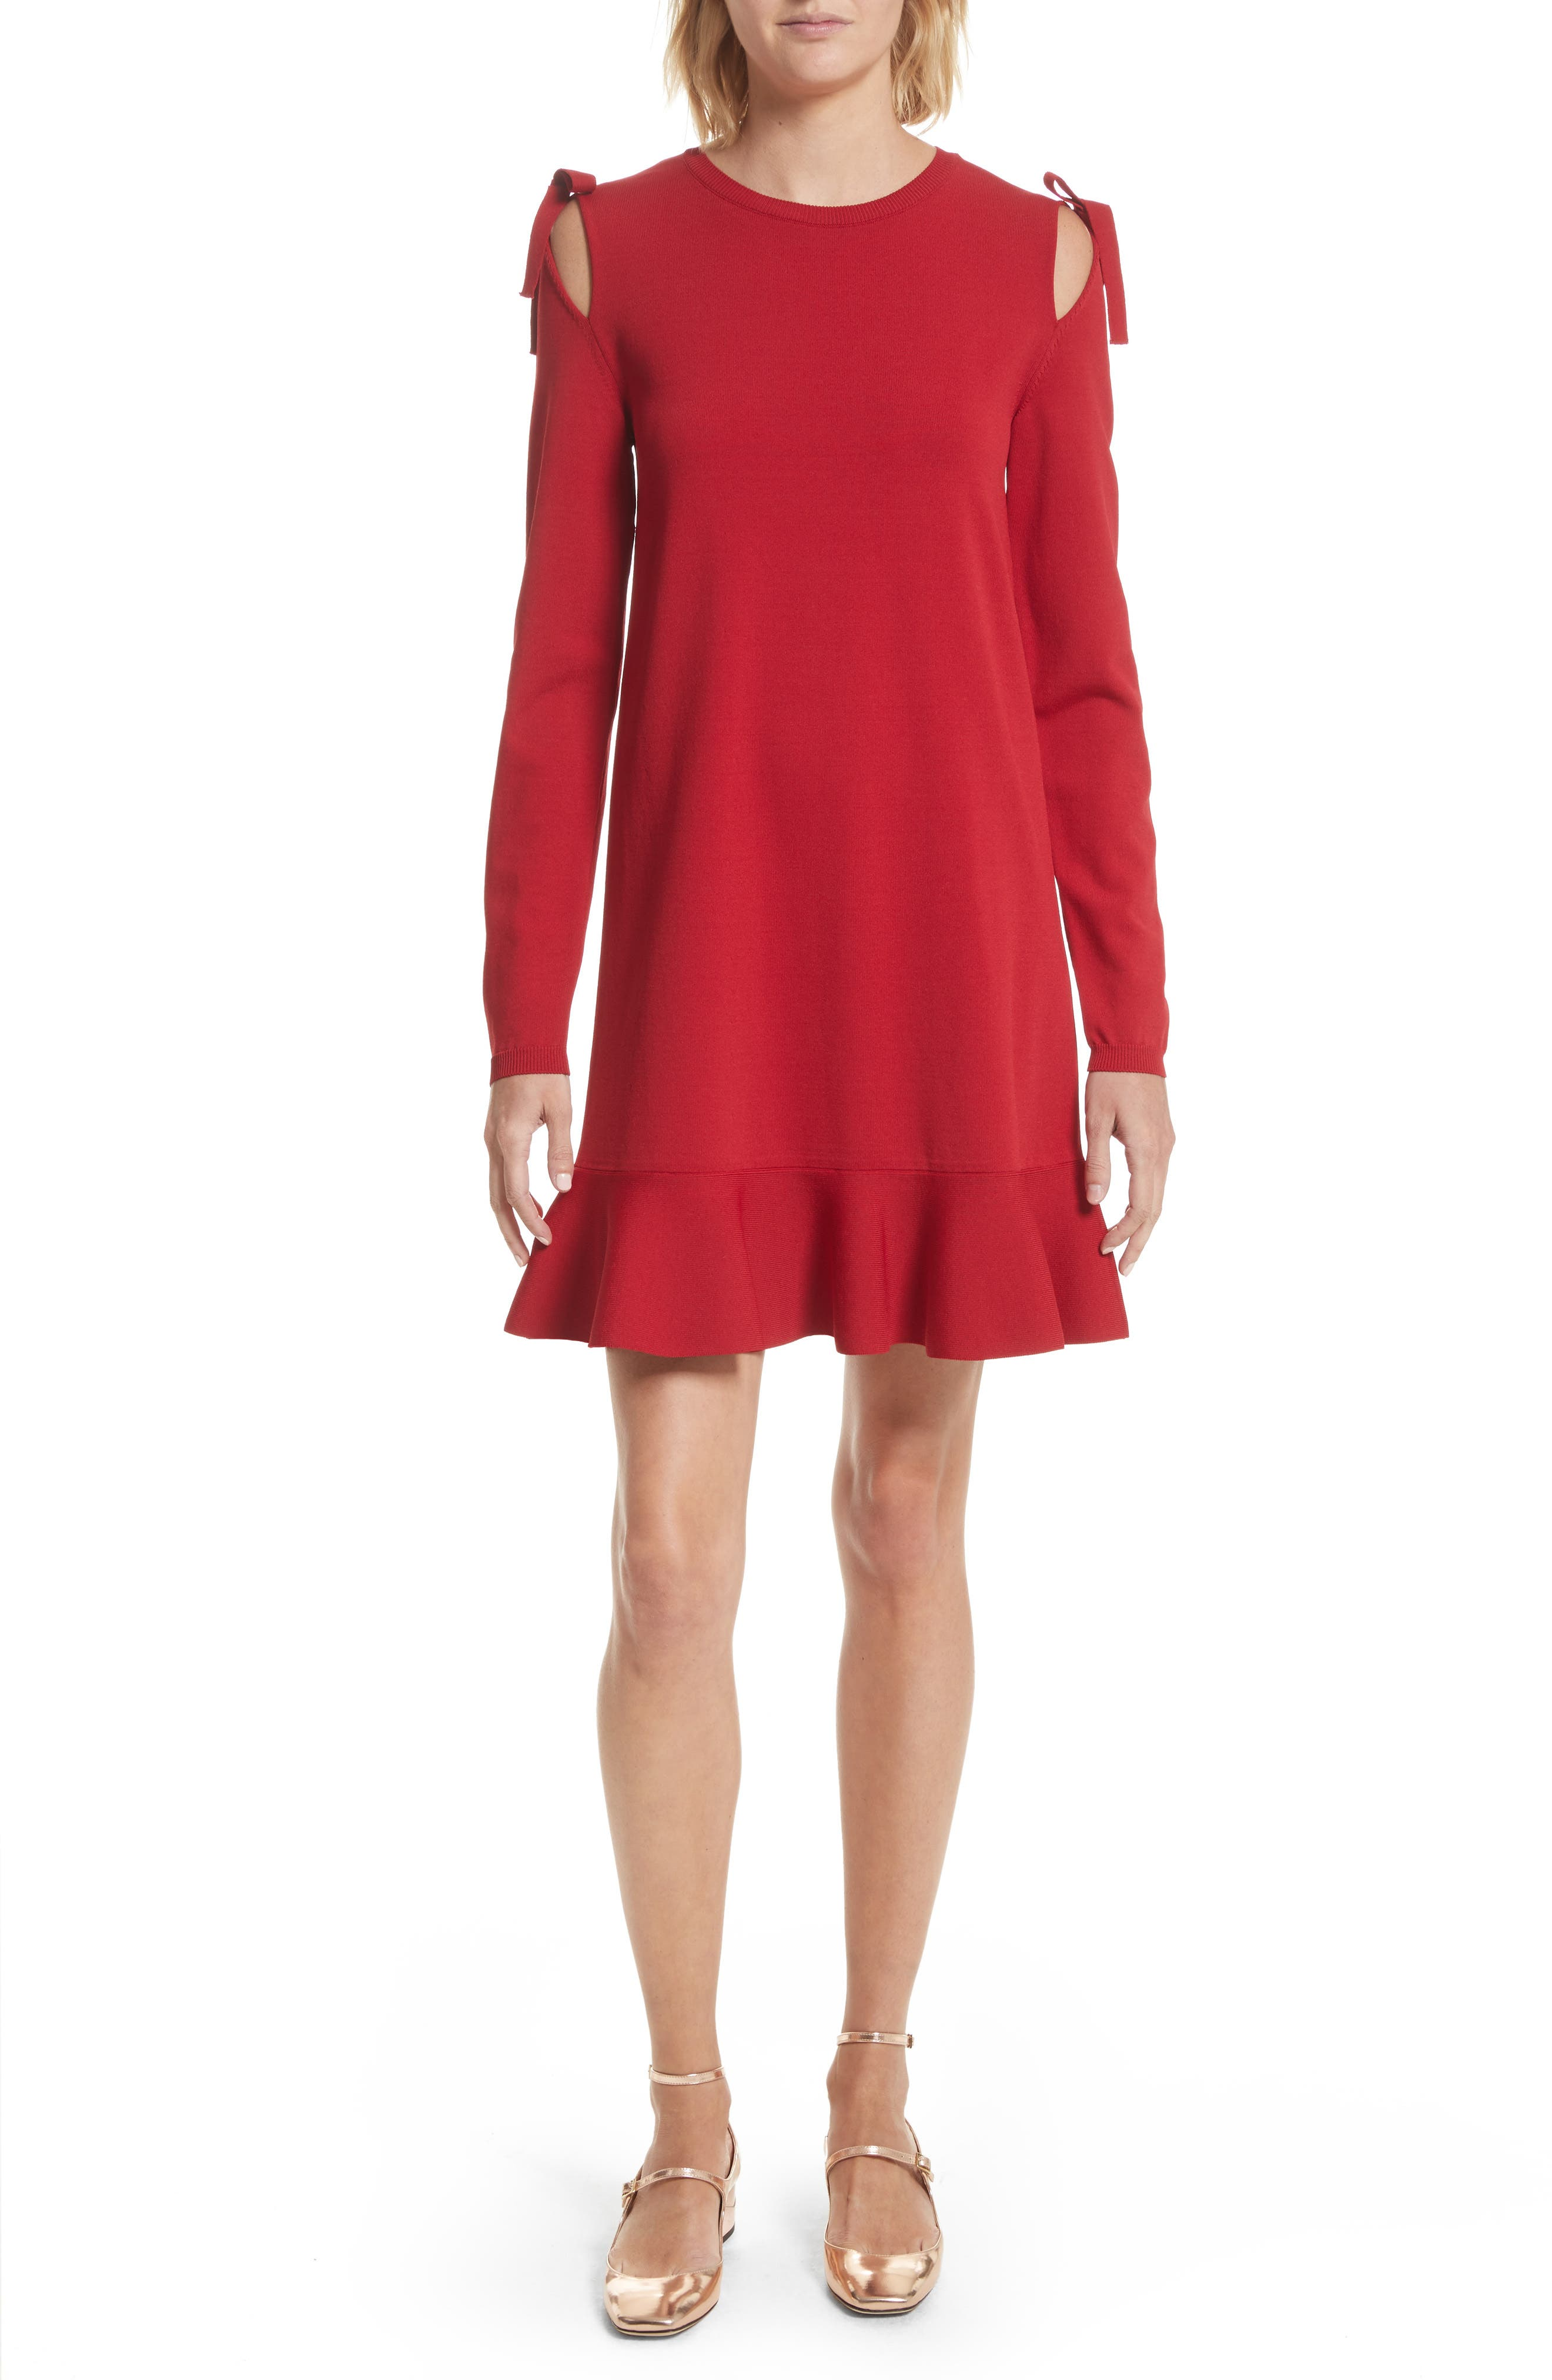 Alternate Image 1 Selected - RED Valentino Bow Knit Dress